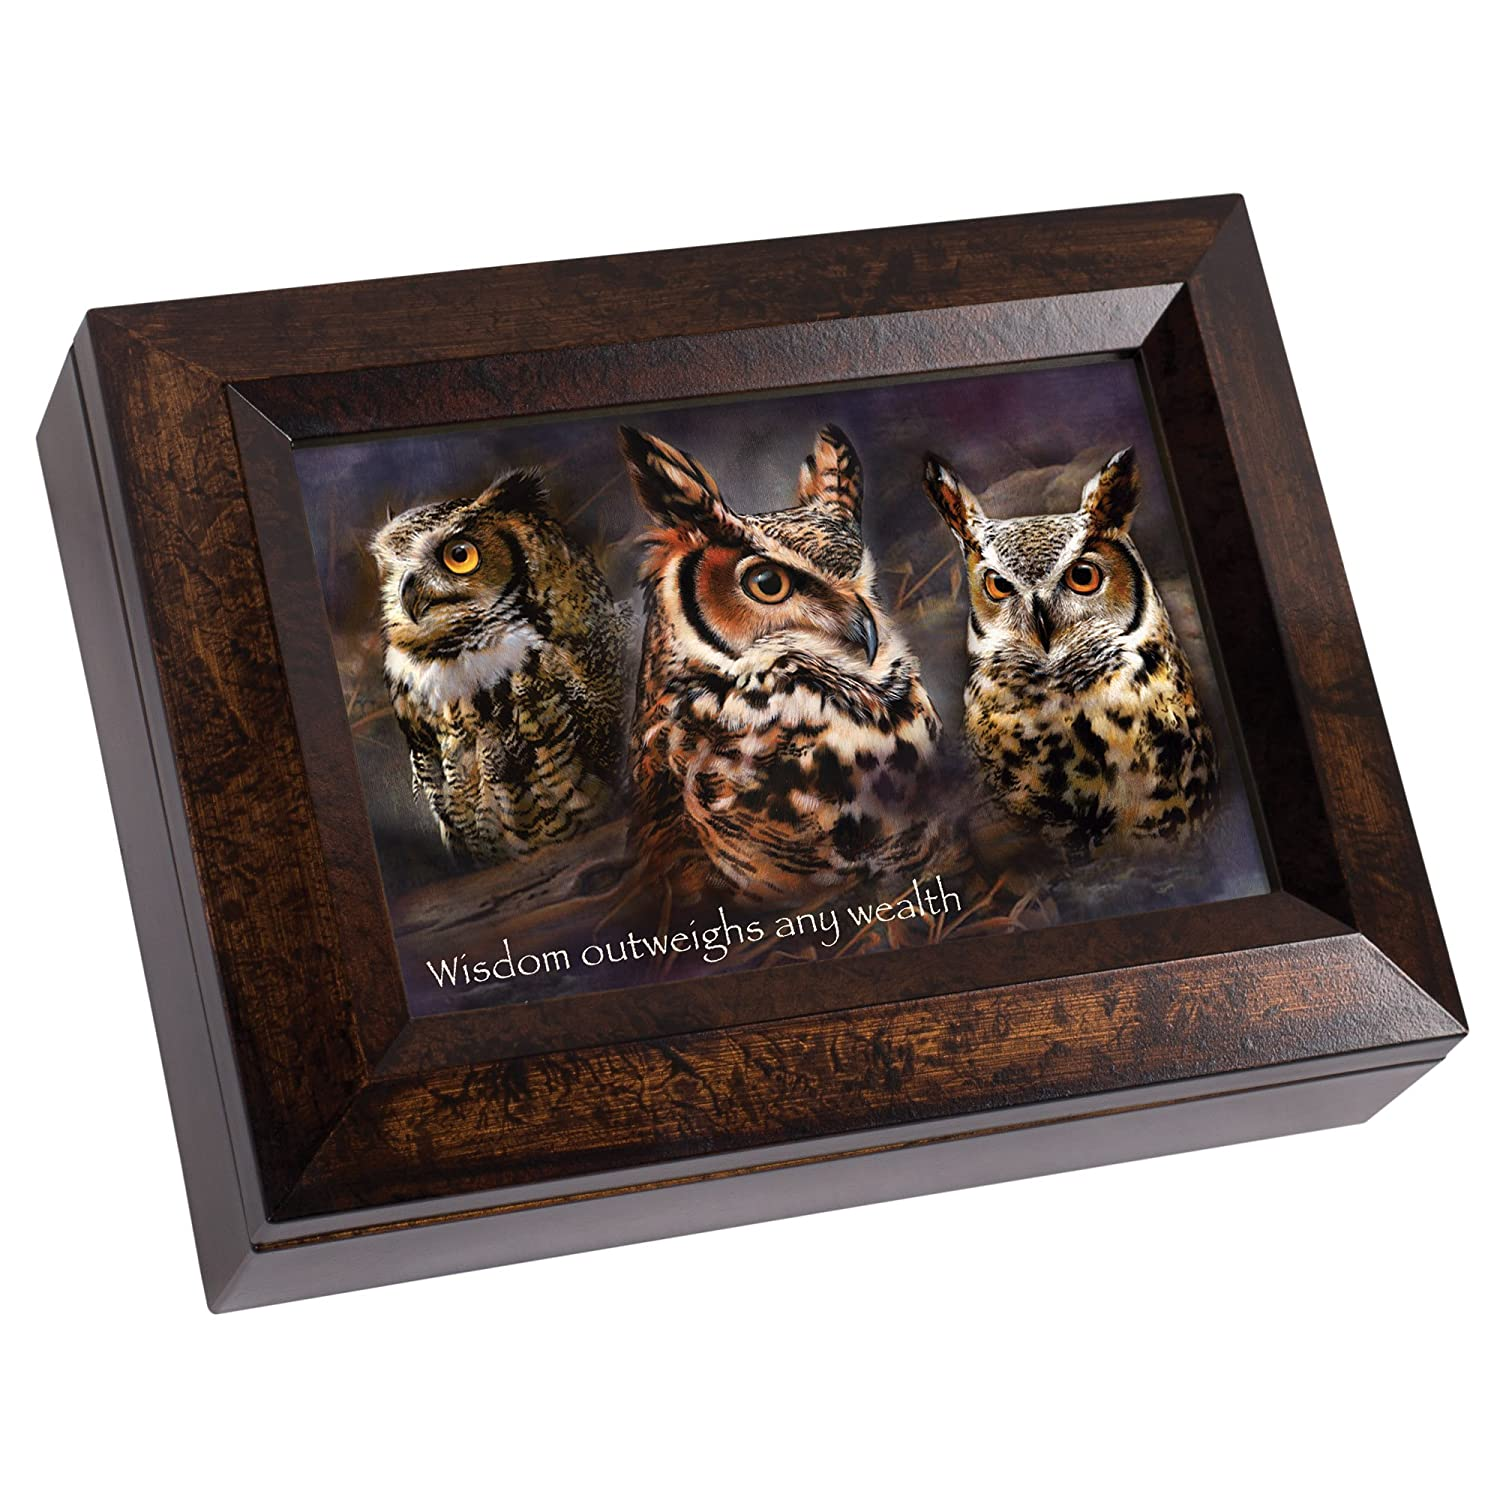 【あすつく】 Owl Sound Wisdom Outweighs Any Wealth Amber Cottage Garden Any Burlwood Amber Finish Digital Nature Sound Recording Keepsake Box B00KY7AA8G, 品良:44d64c93 --- arcego.dominiotemporario.com